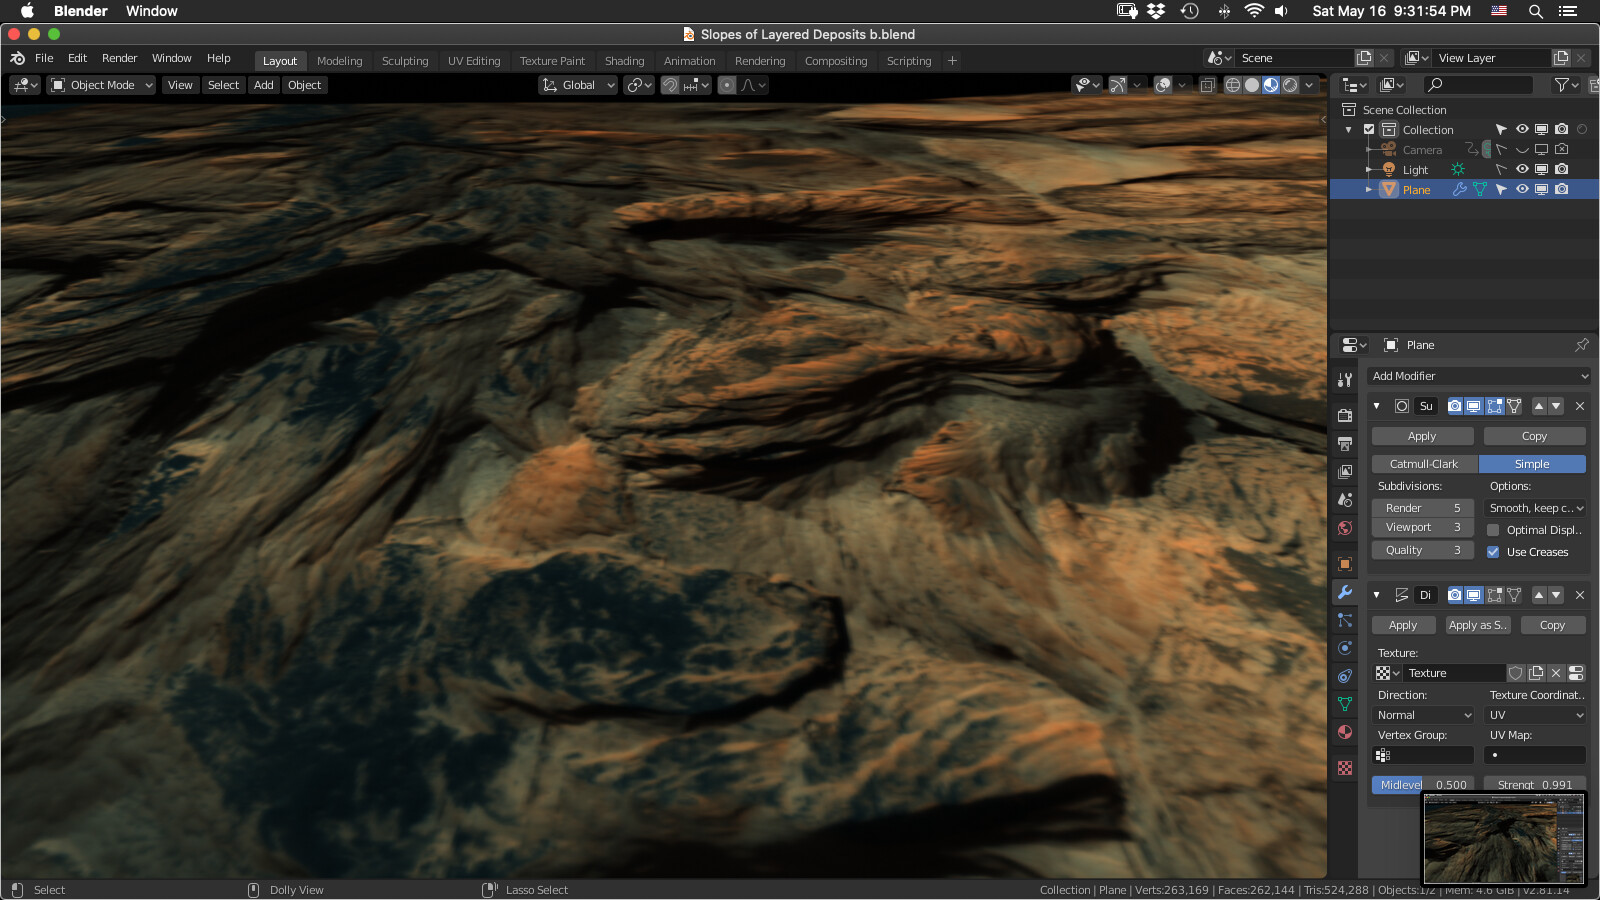 Screengrab of Blender viewport using UofArizona DTMs